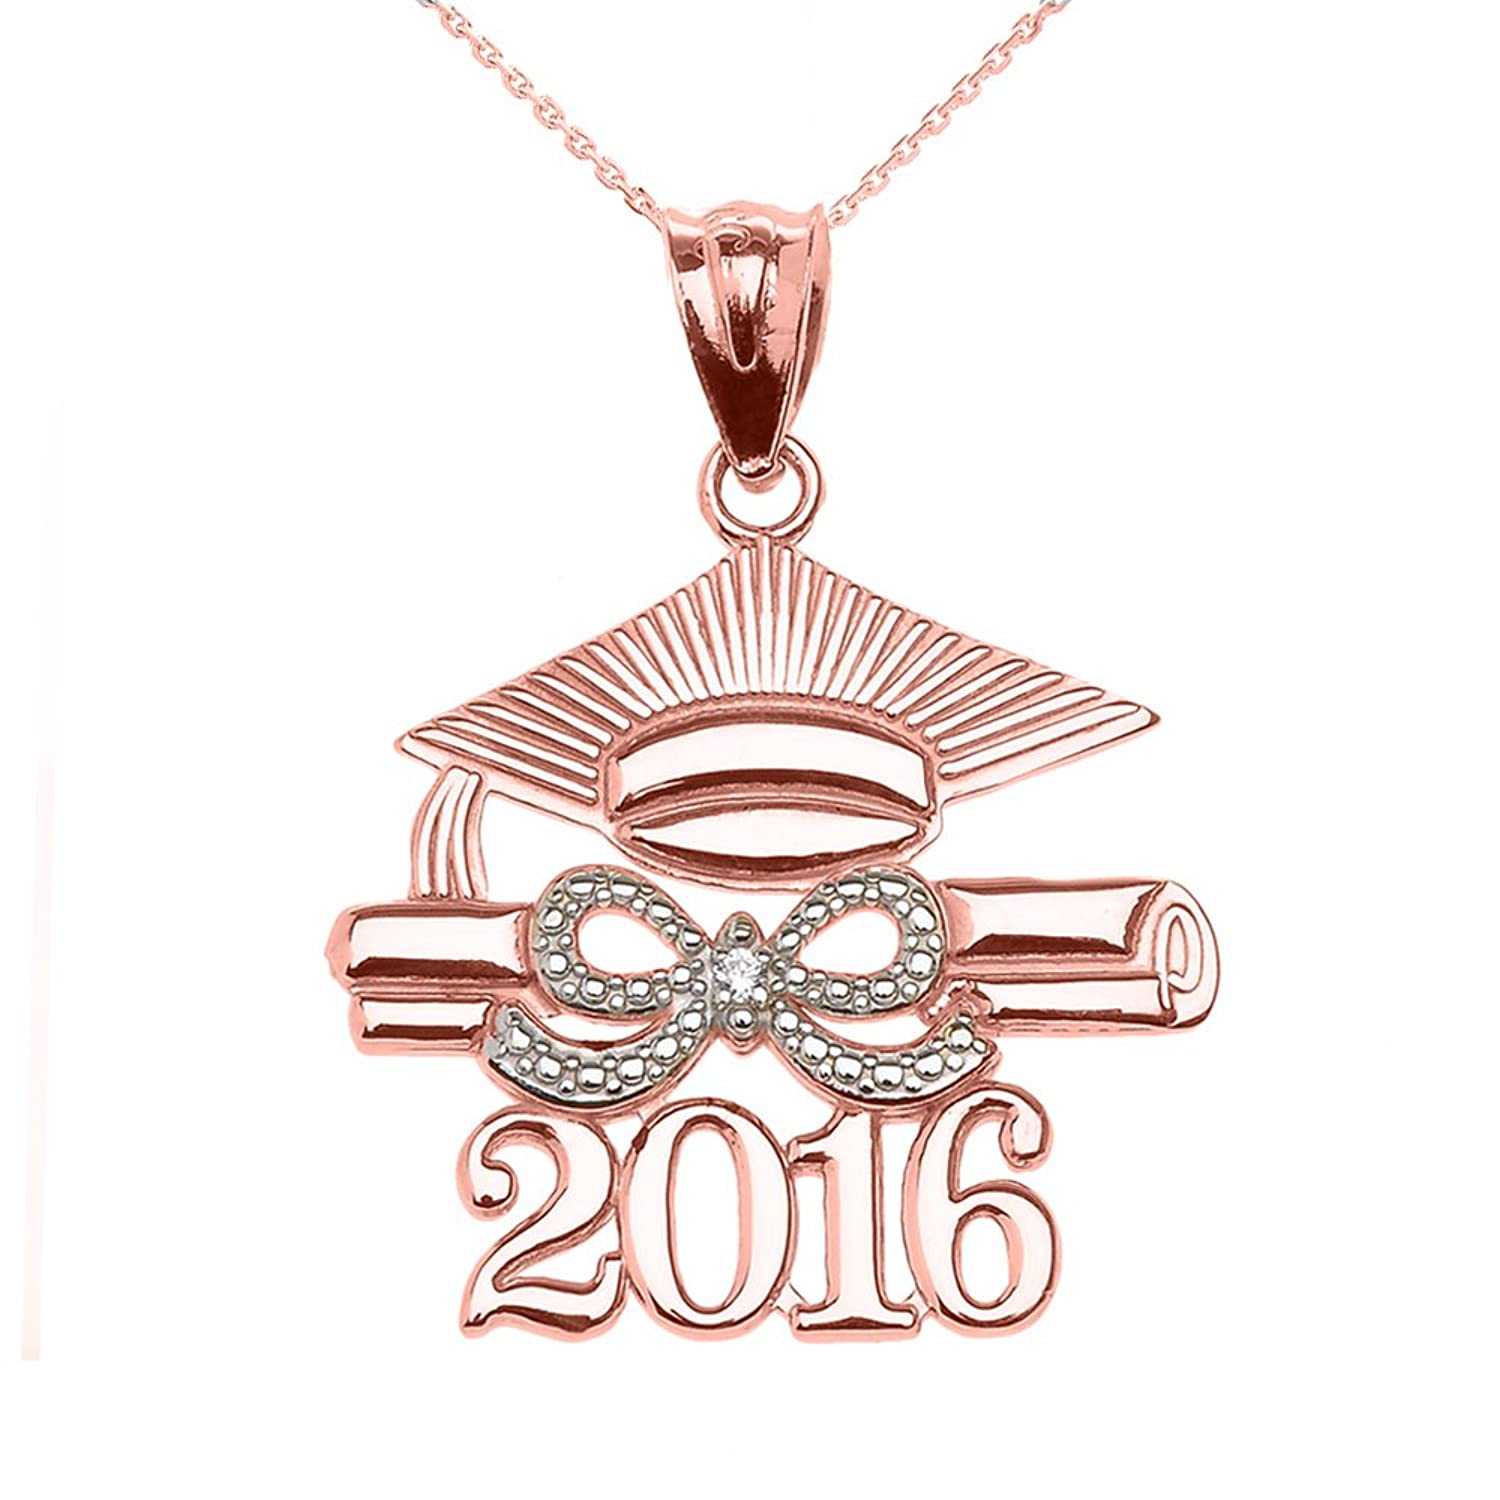 14k Rose Gold Class of 2016 Graduation Pendant Necklace with Diamond